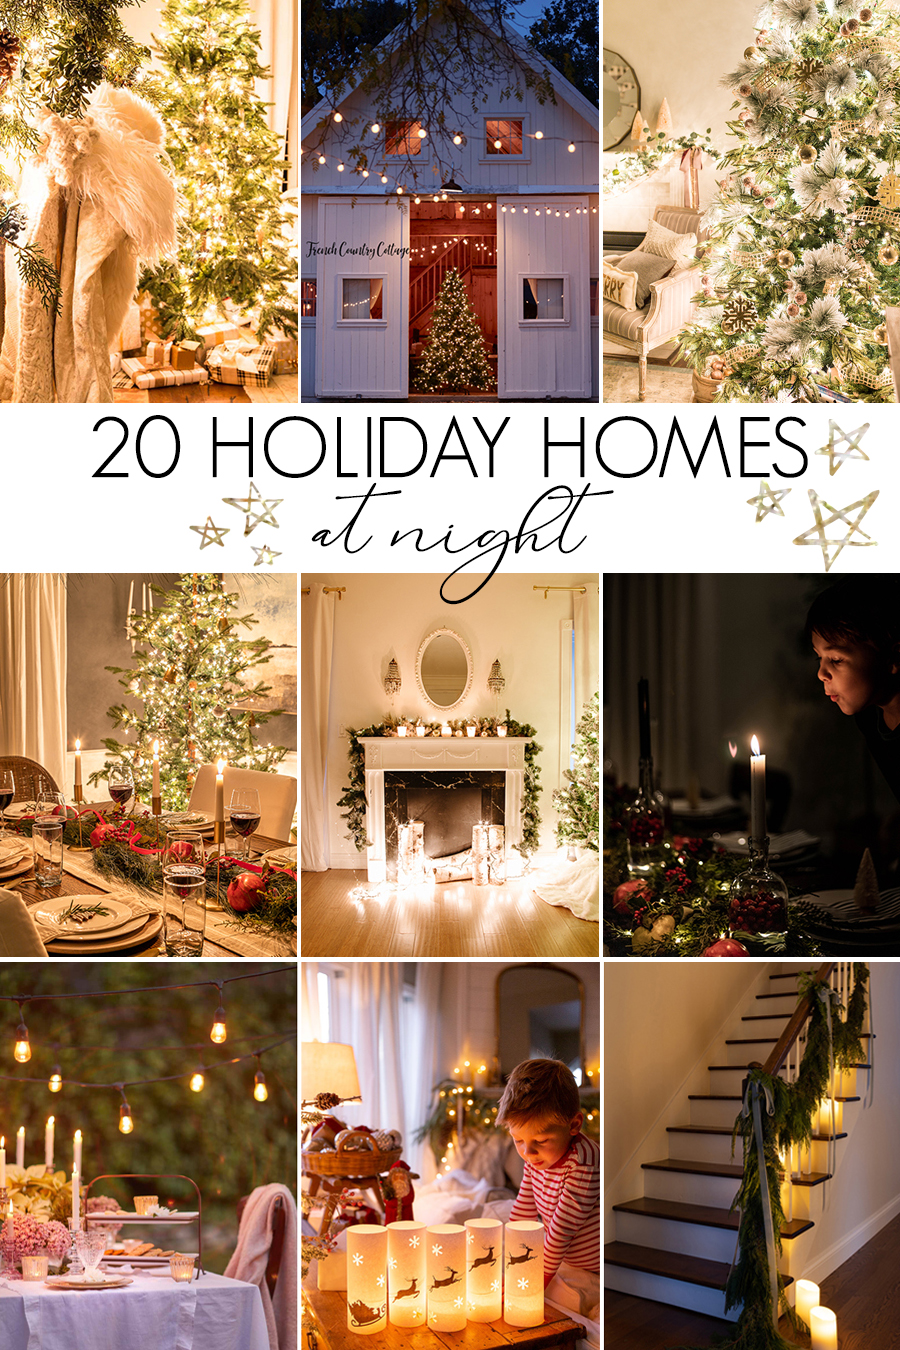 20 Christmas Home Tours at Night kellyelko.com #christmas #christmasnightstour #christmasdecor #christmaslights #farmhousechristmas #kellyelko